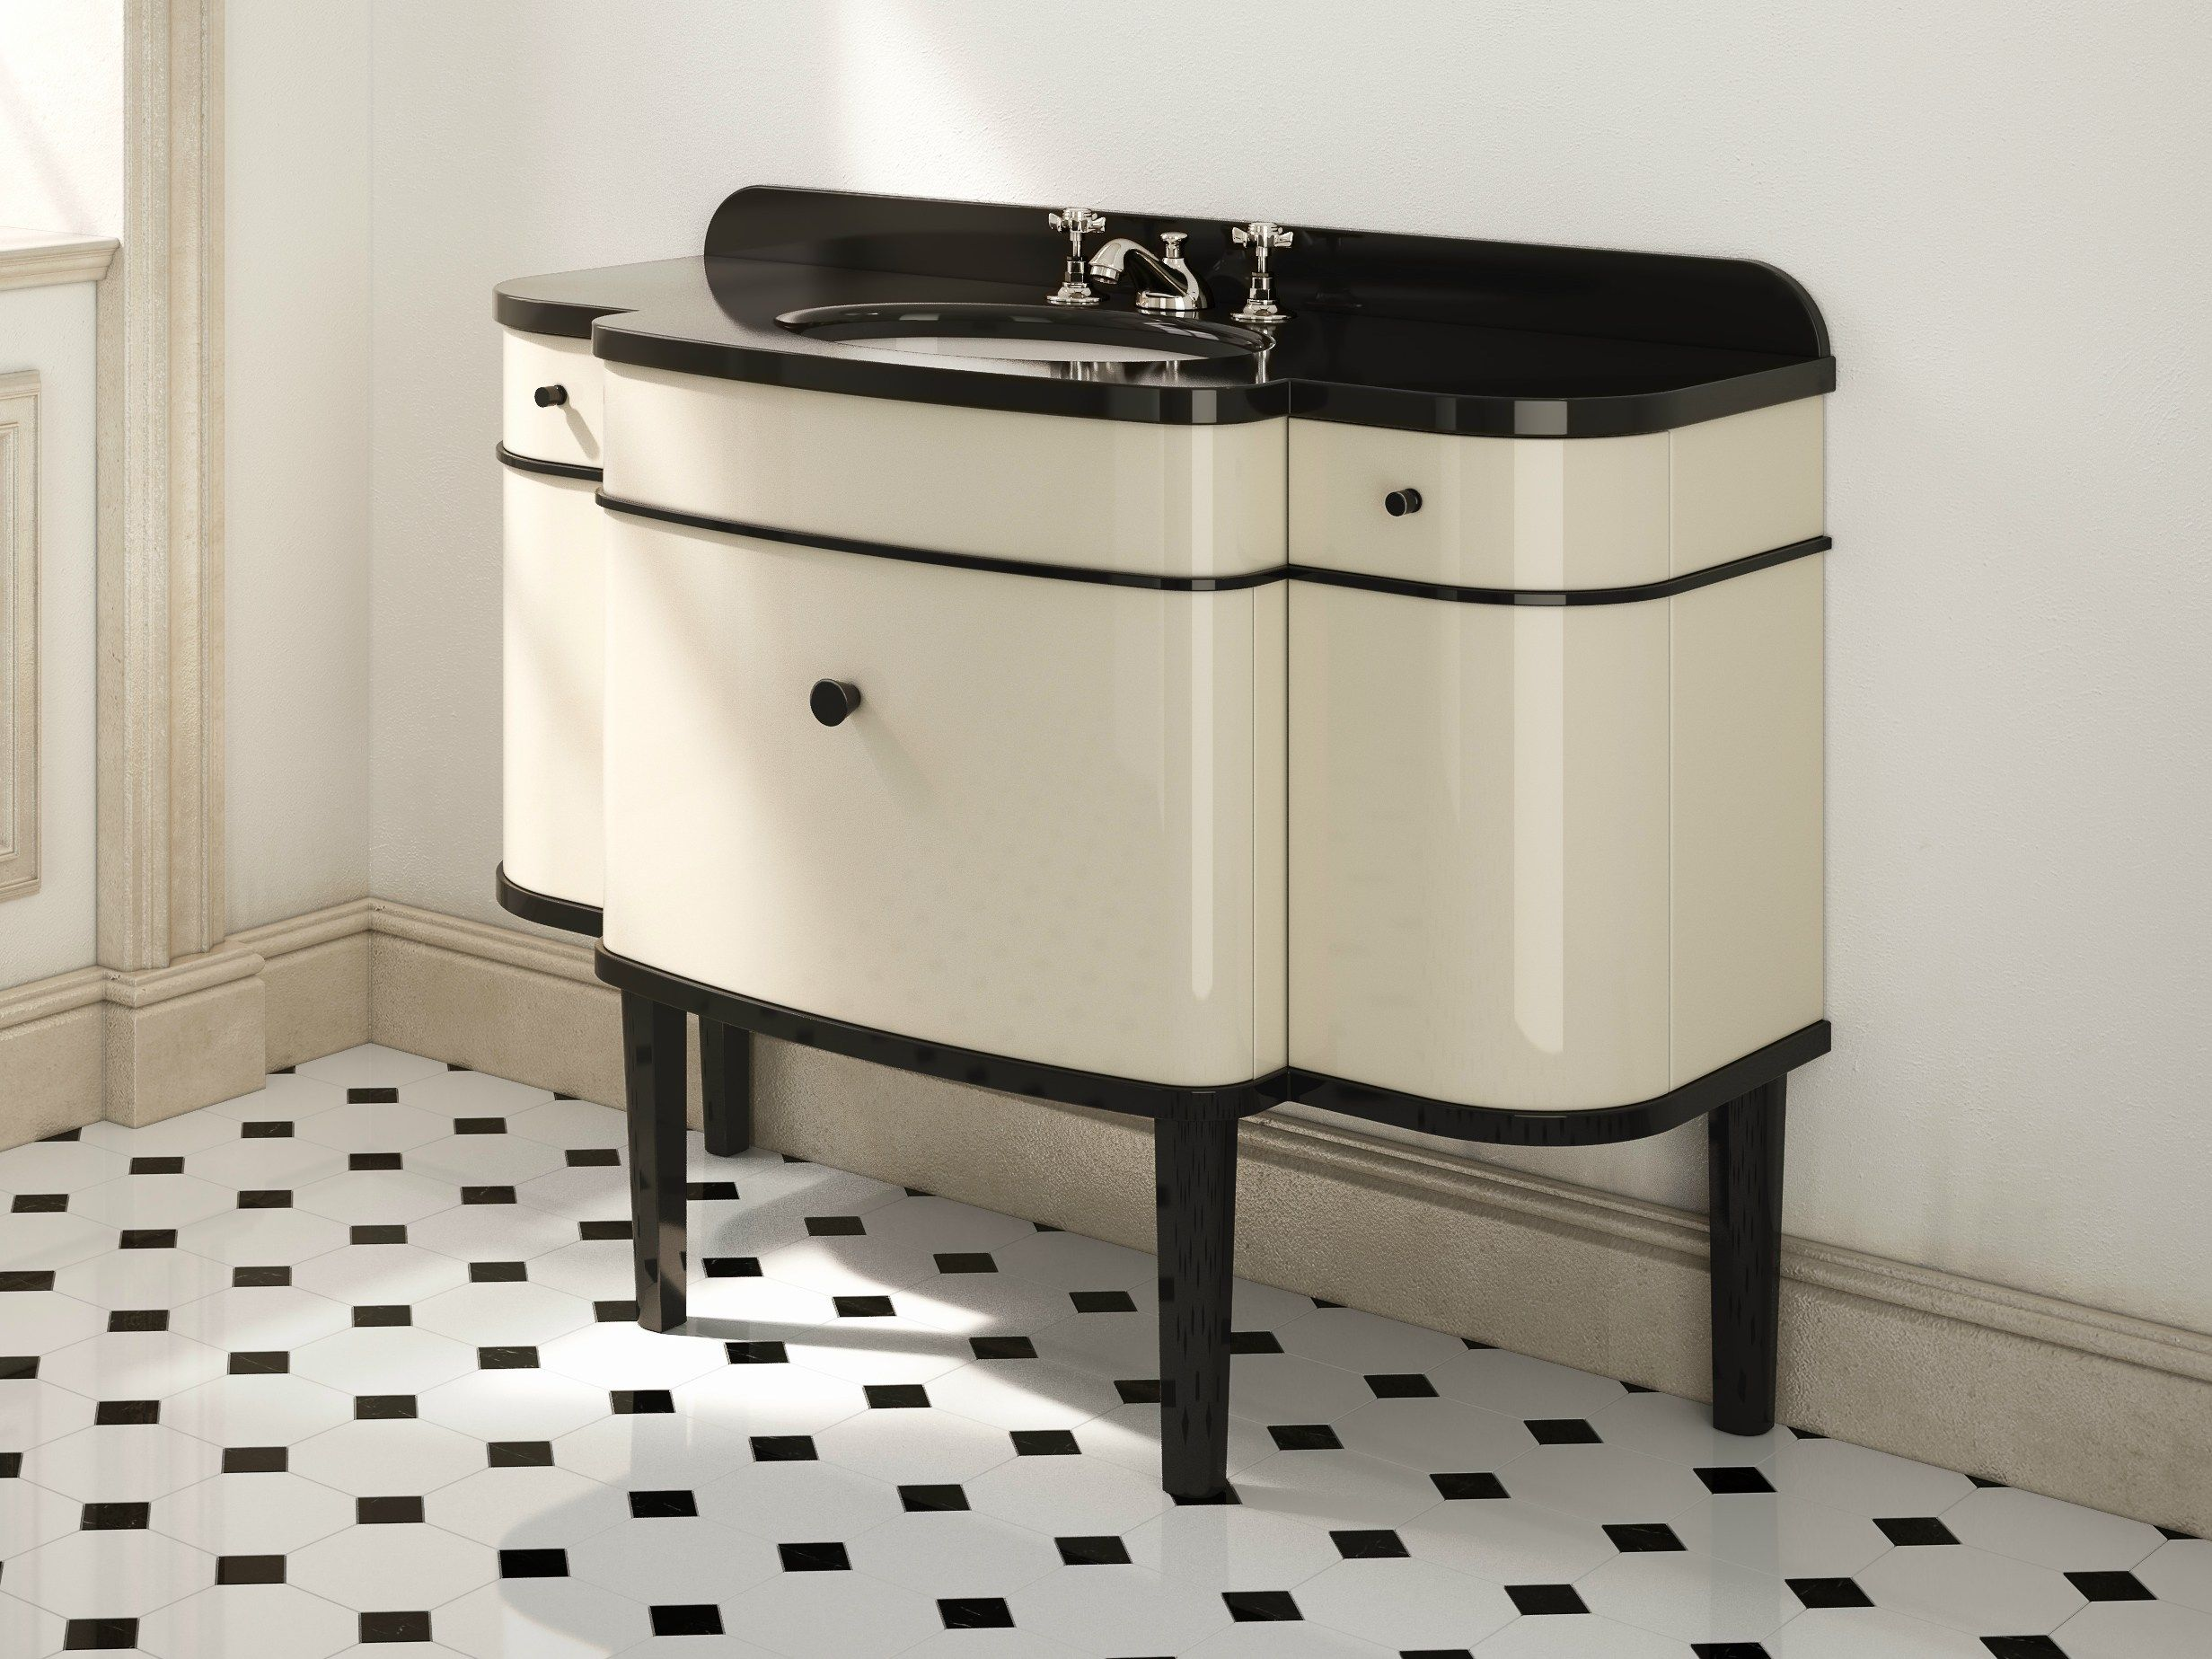 Lavabo Art Deco | Muebles | Pinterest | Art deco, 1930s bathroom and ...